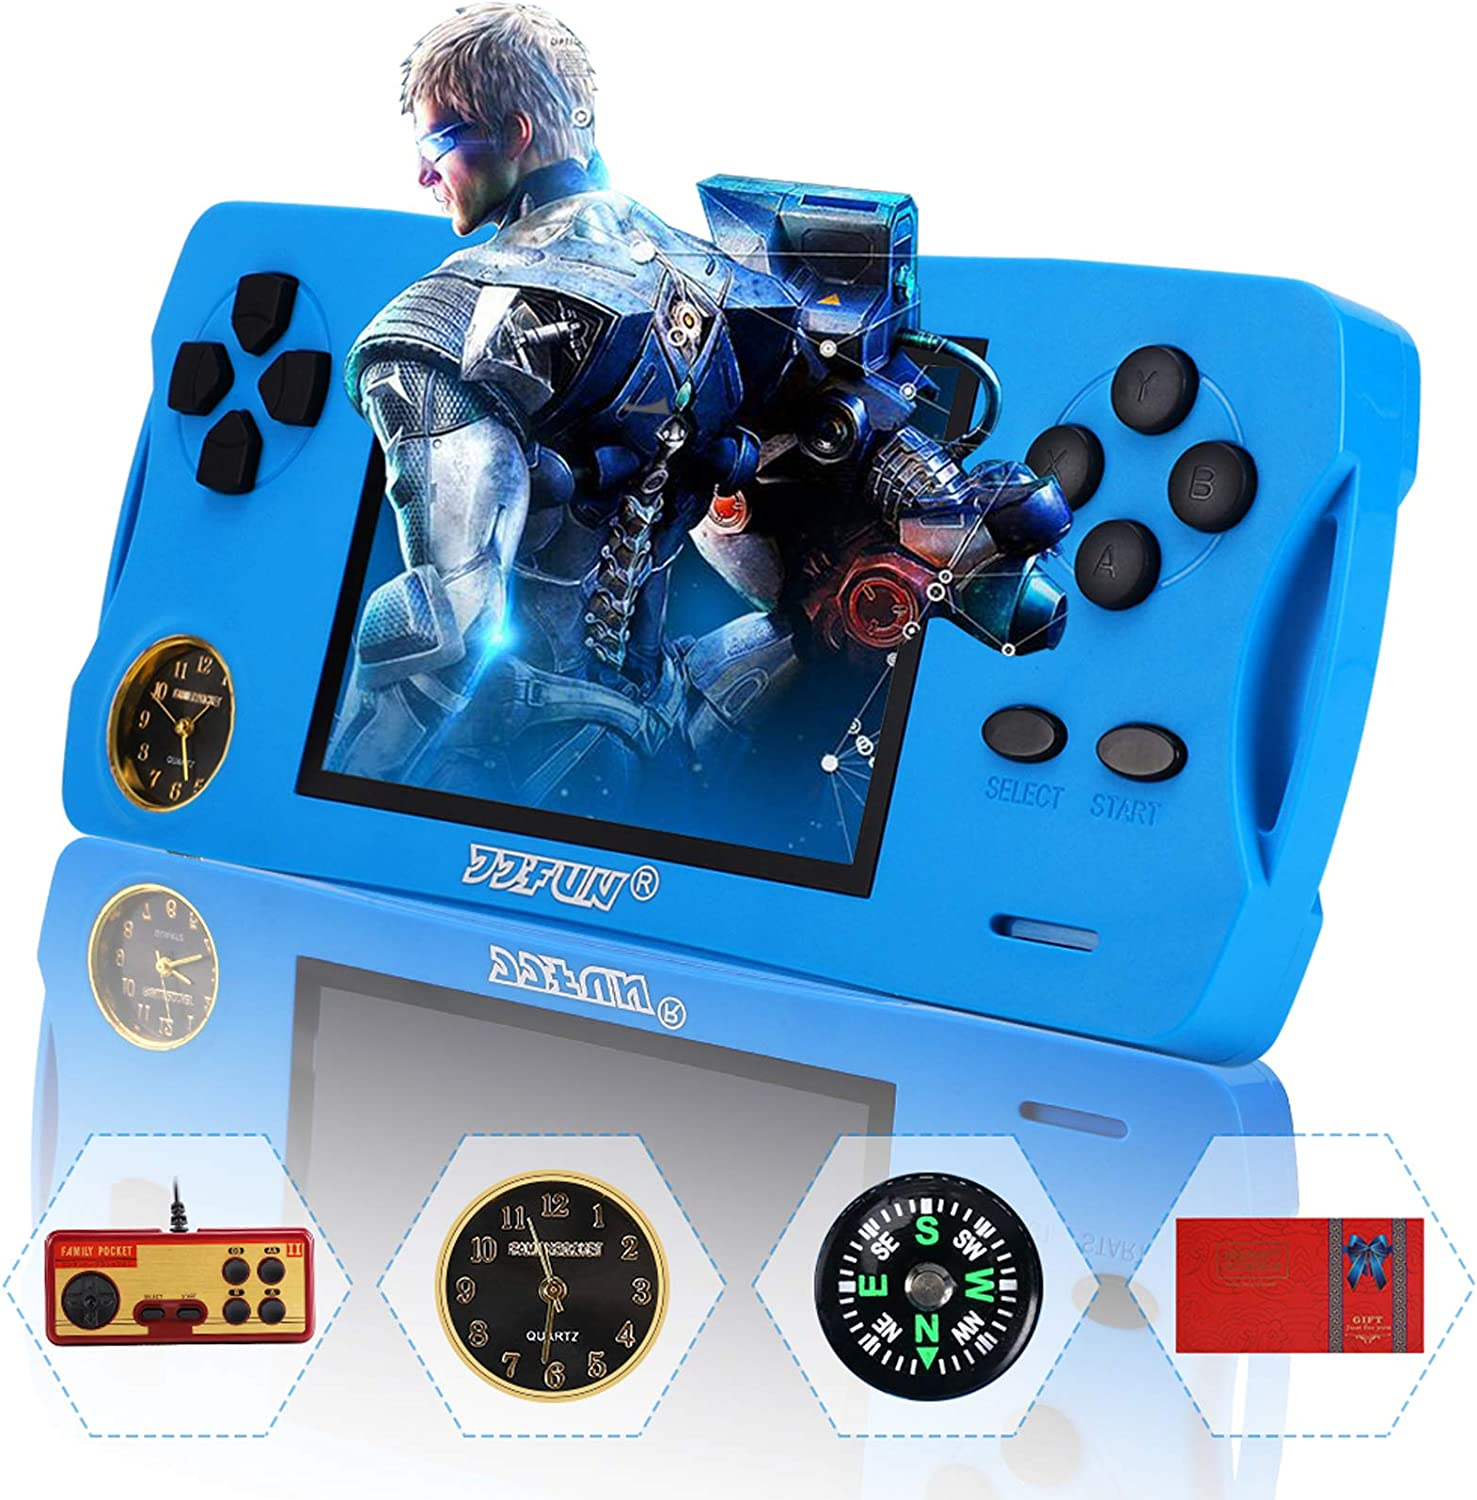 """JJFUN Retro Arcade Handheld Games Console for Boys Girls, Built-in 480Childhood Games 3.5"""" Screen AV-Out Video Game Player with Free 32G TF Card, Family-Friendly Party Games Birthday Gift Toys-Blue"""